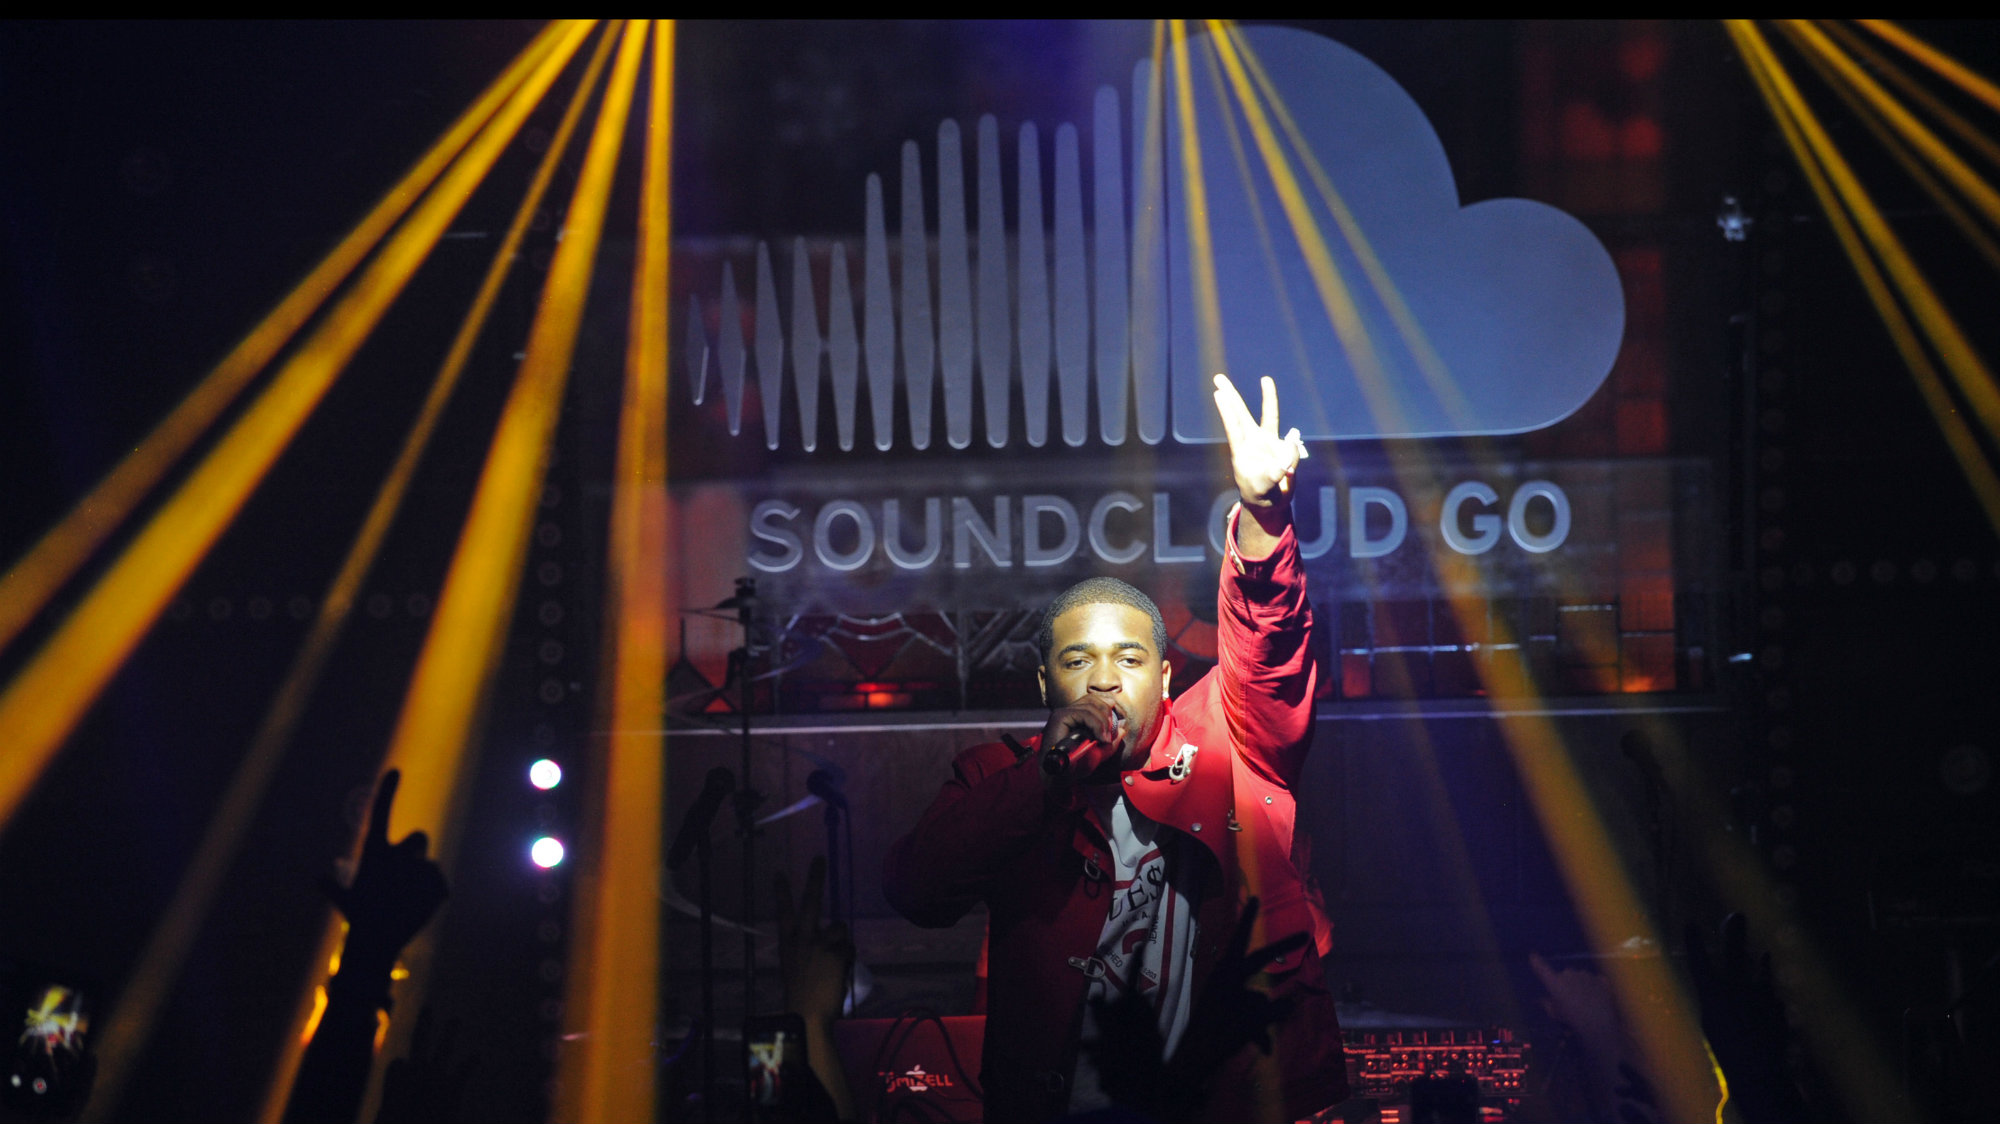 ASAP Ferg performs at the #SoundCloudGo launch experience at Flash Factory, Thursday, March 31, 2016, in New York.